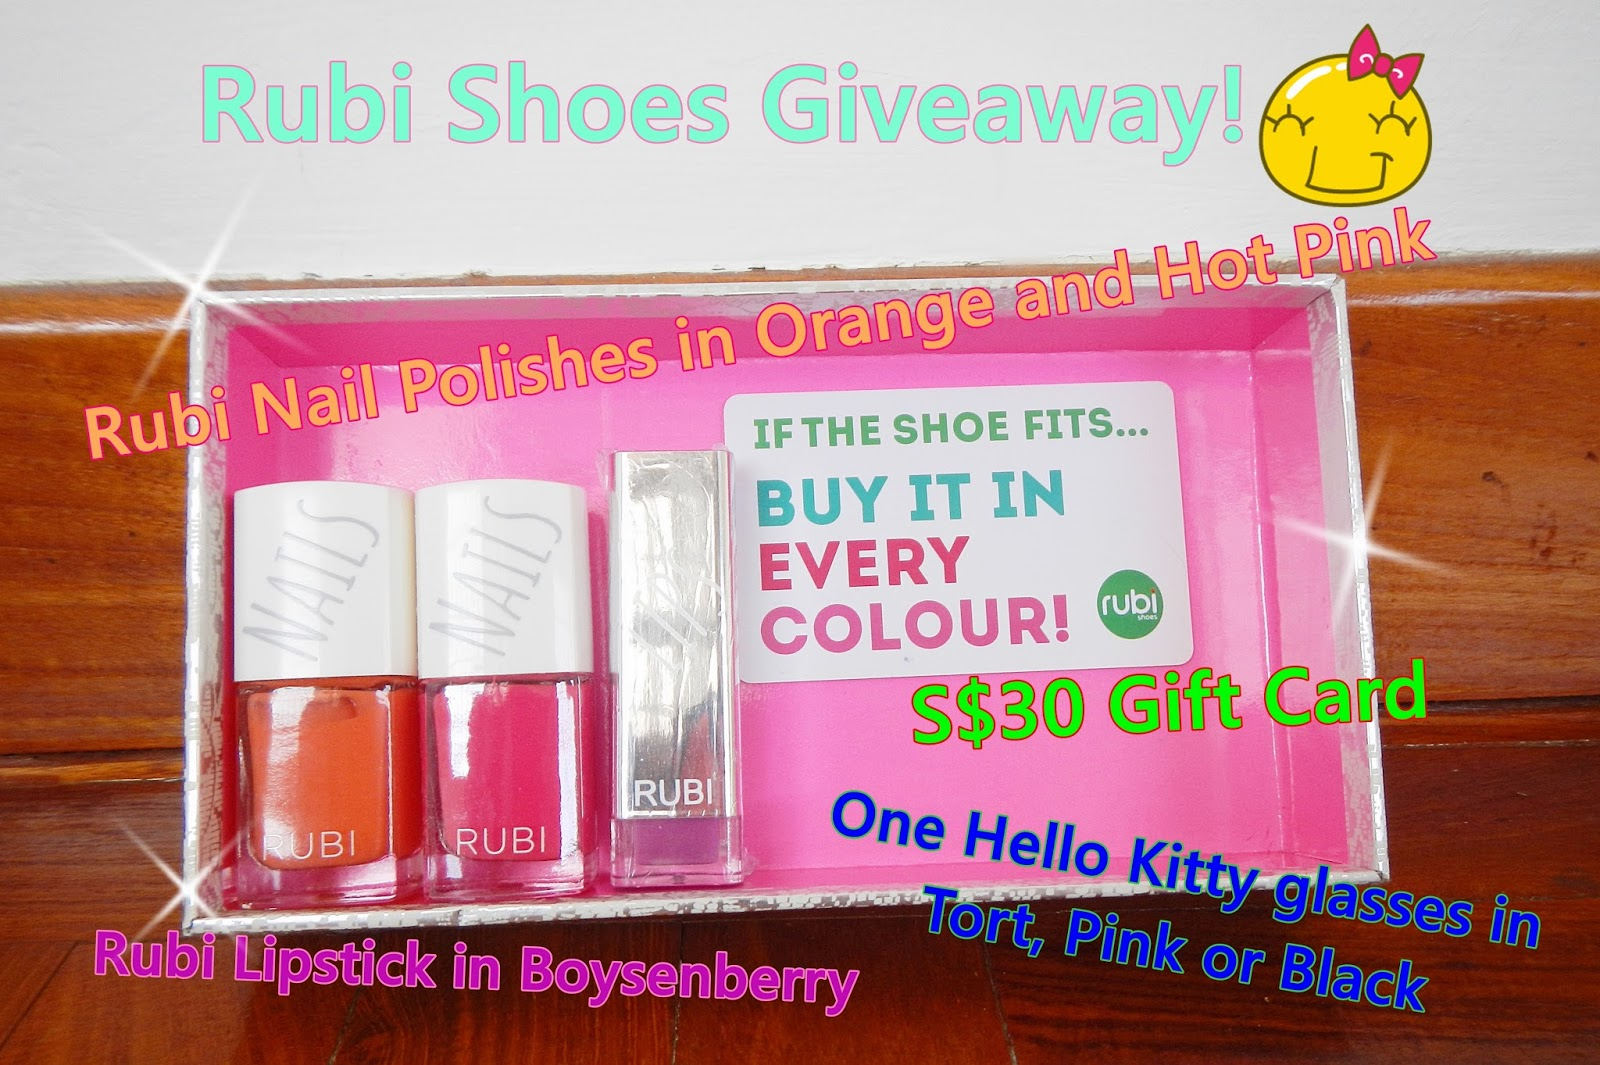 Join My Rubi Shoes Giveaway!!!